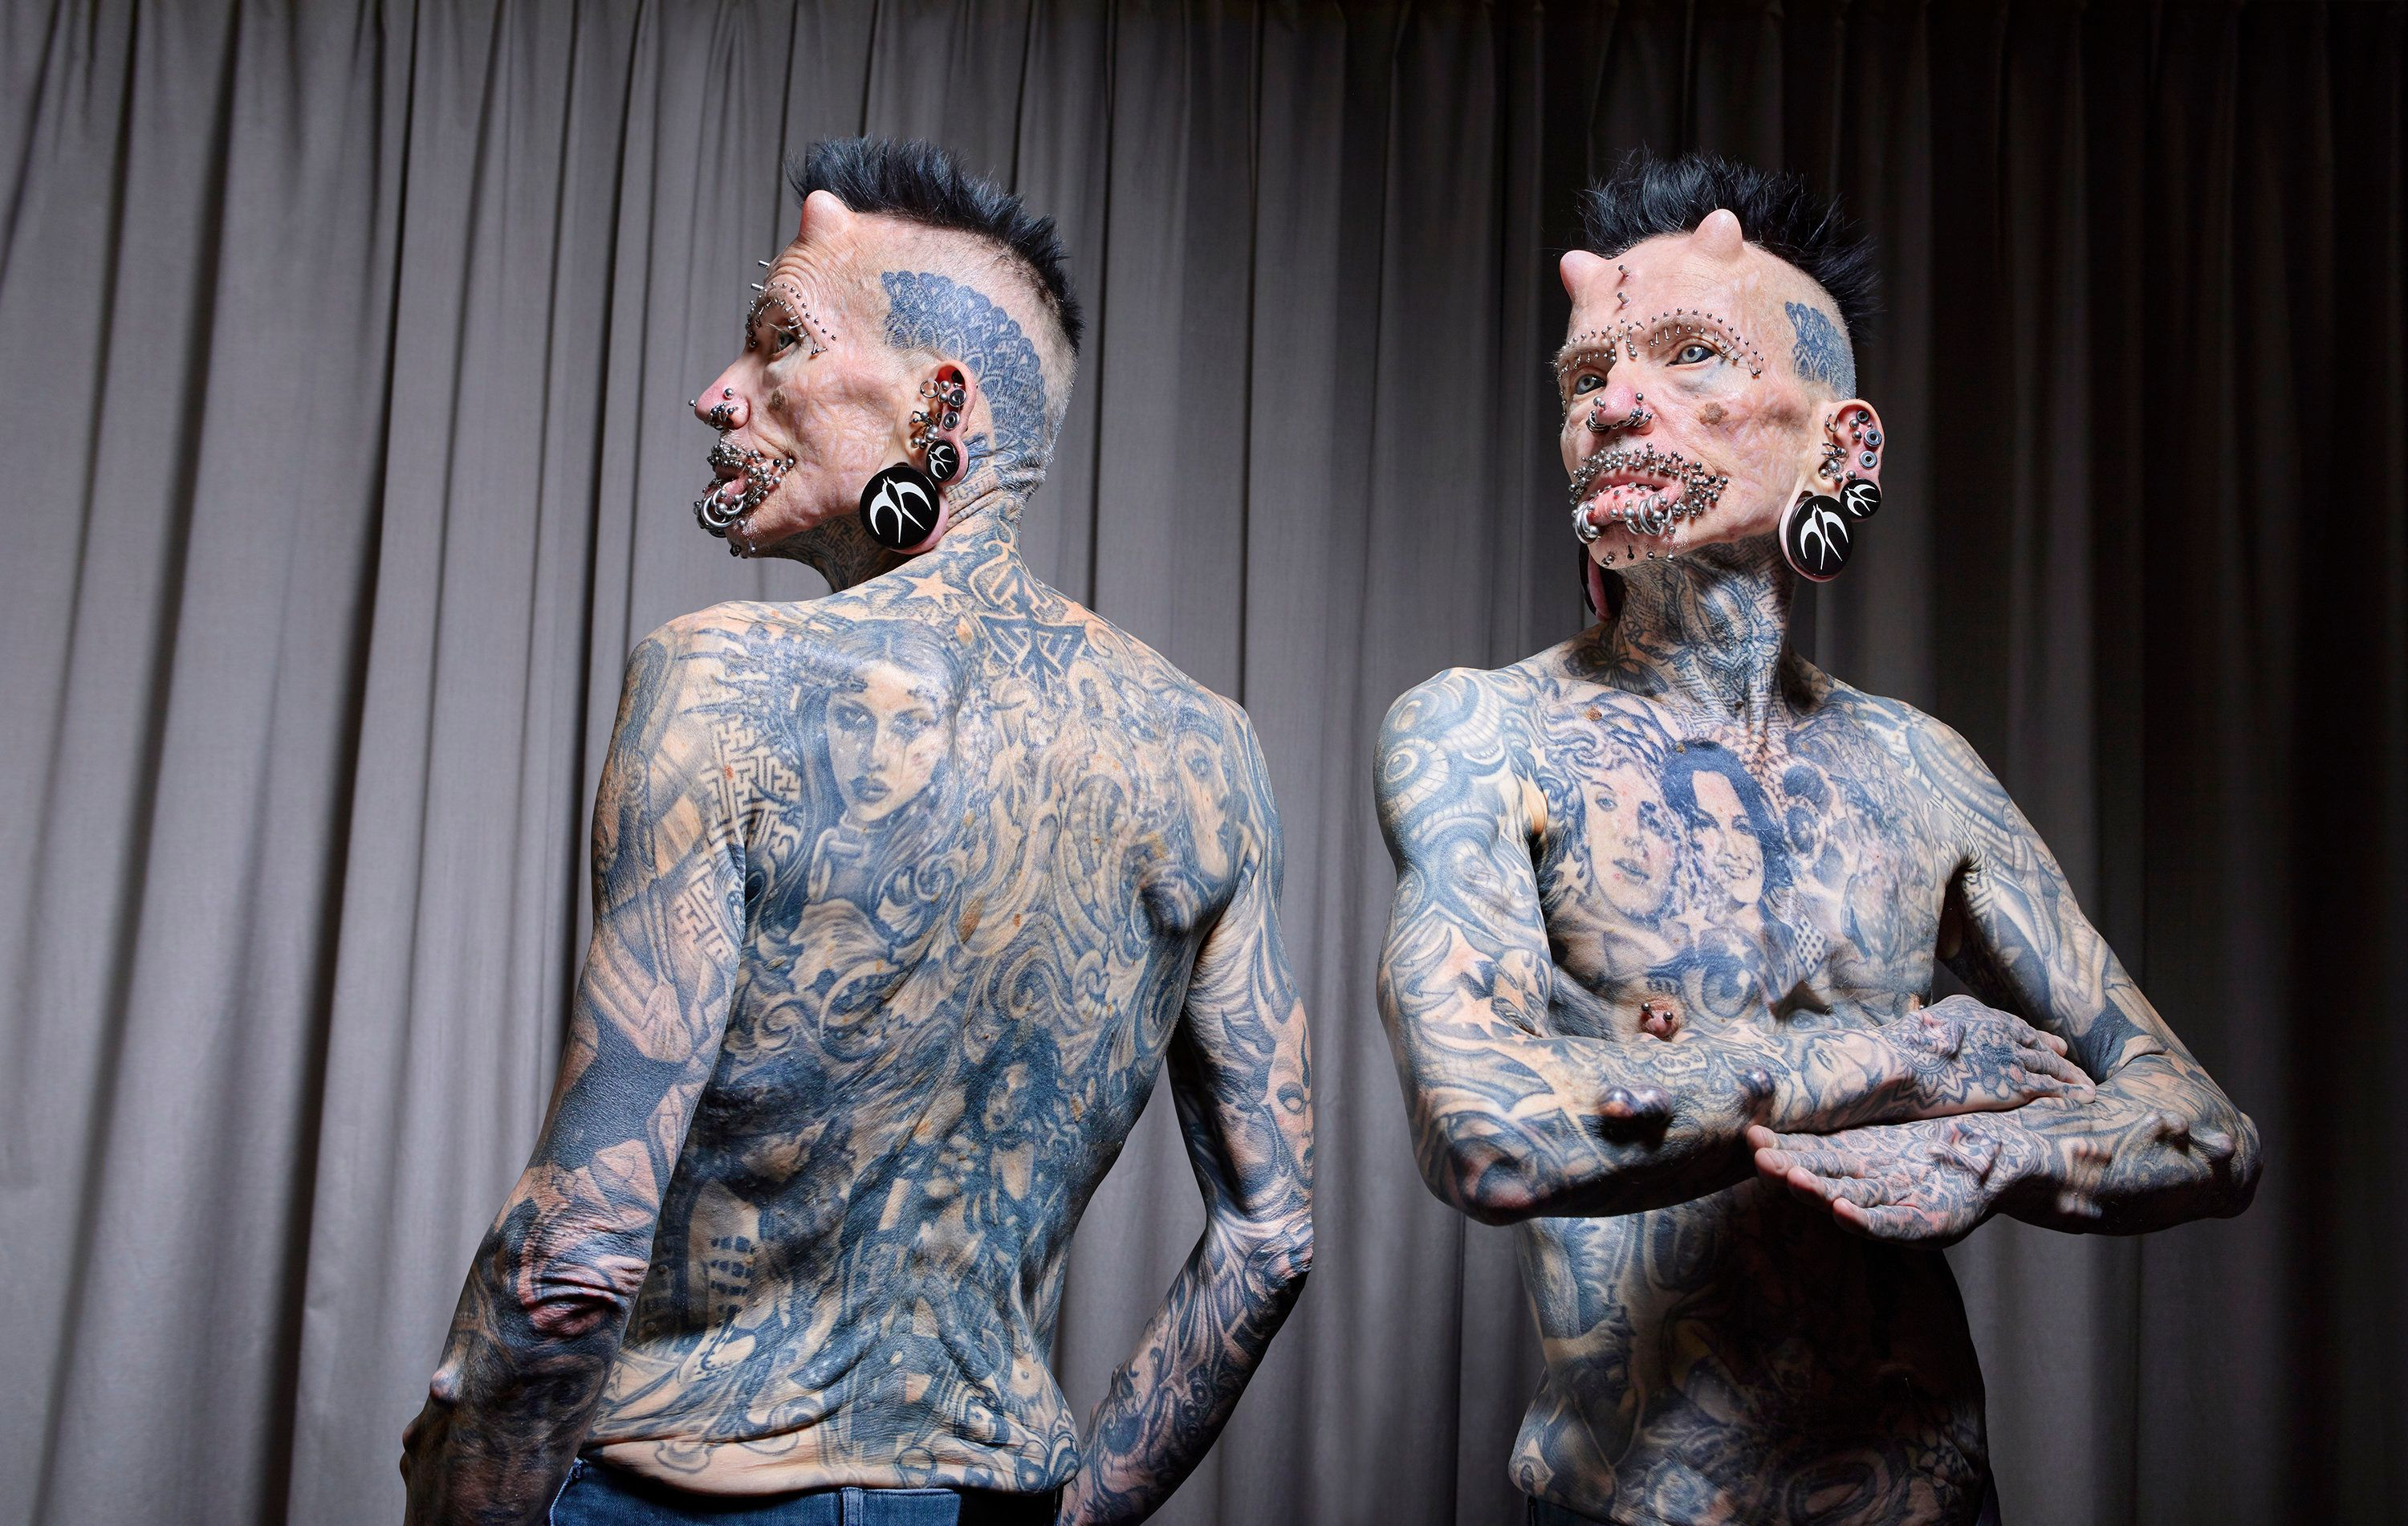 Rolf Buchholz - Most Body Modifications